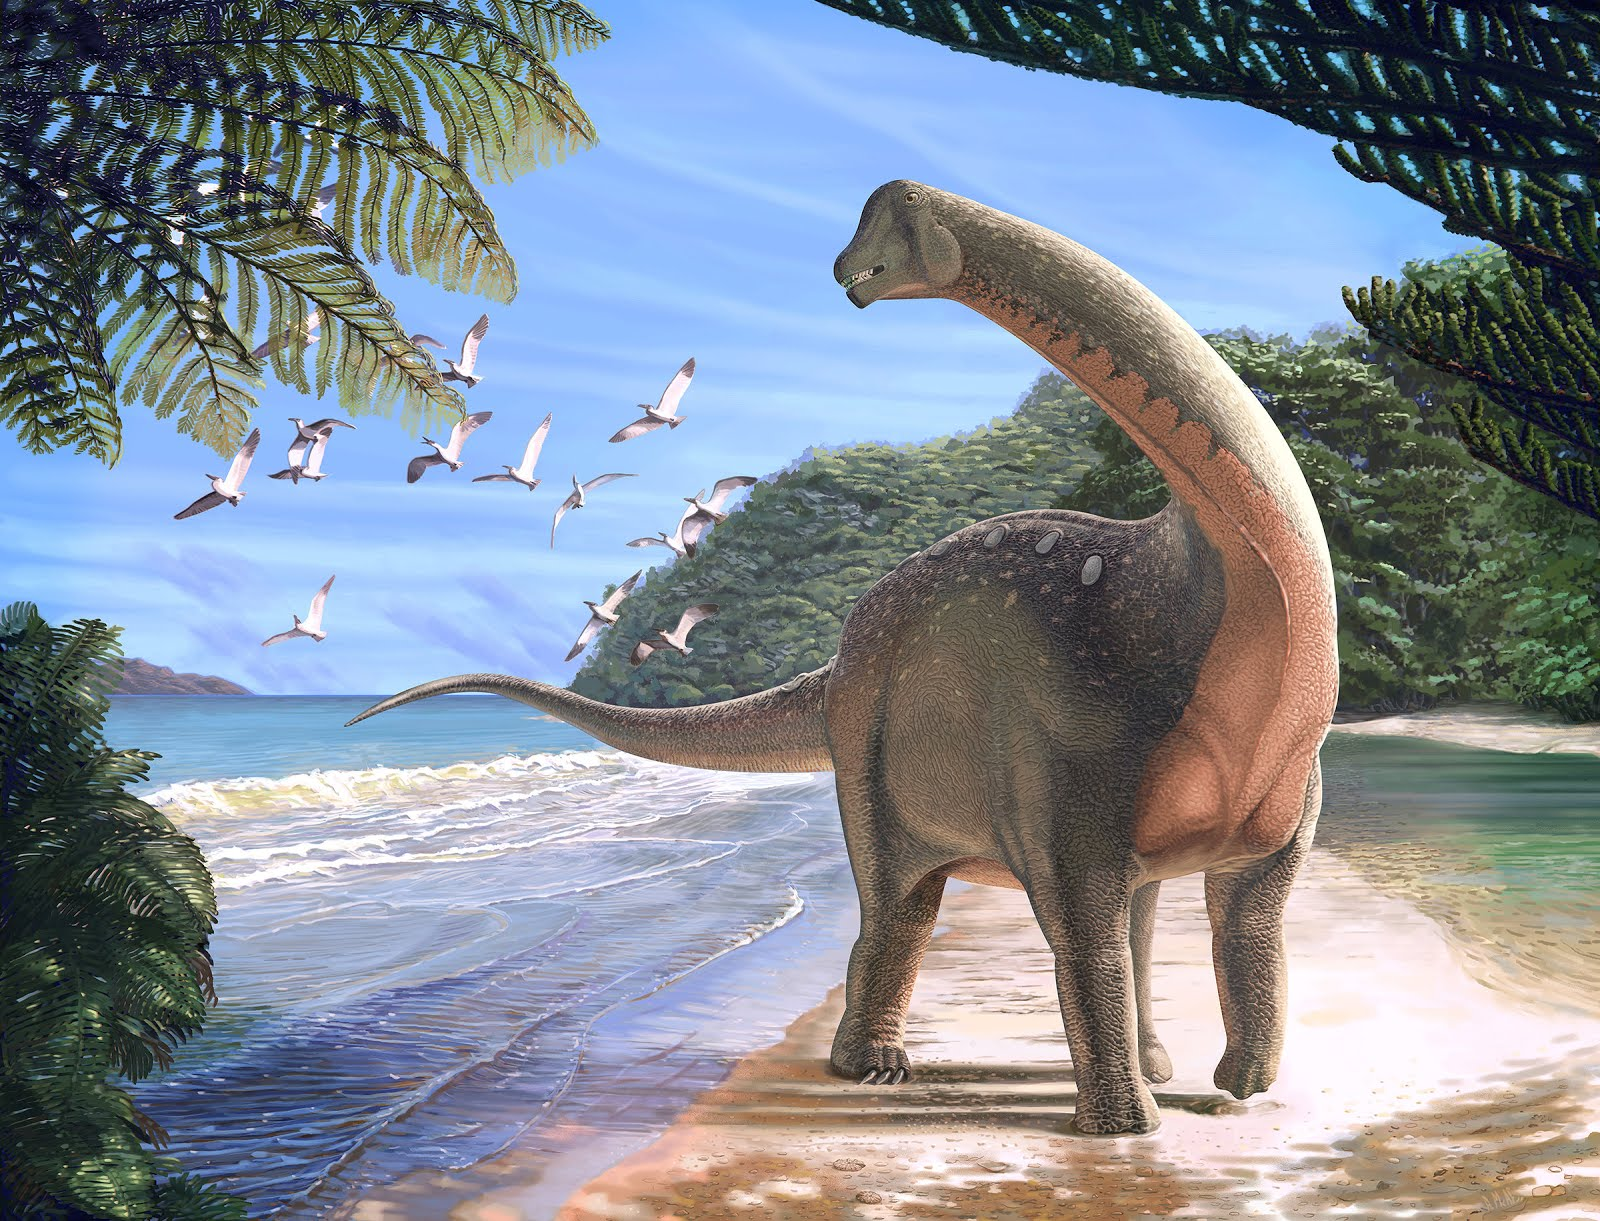 an overview of the dinosaur species from the ancient history Find out more about the history of why did the dinosaurs die out is the name given to the die-off of the dinosaurs and other species that took place some 65.